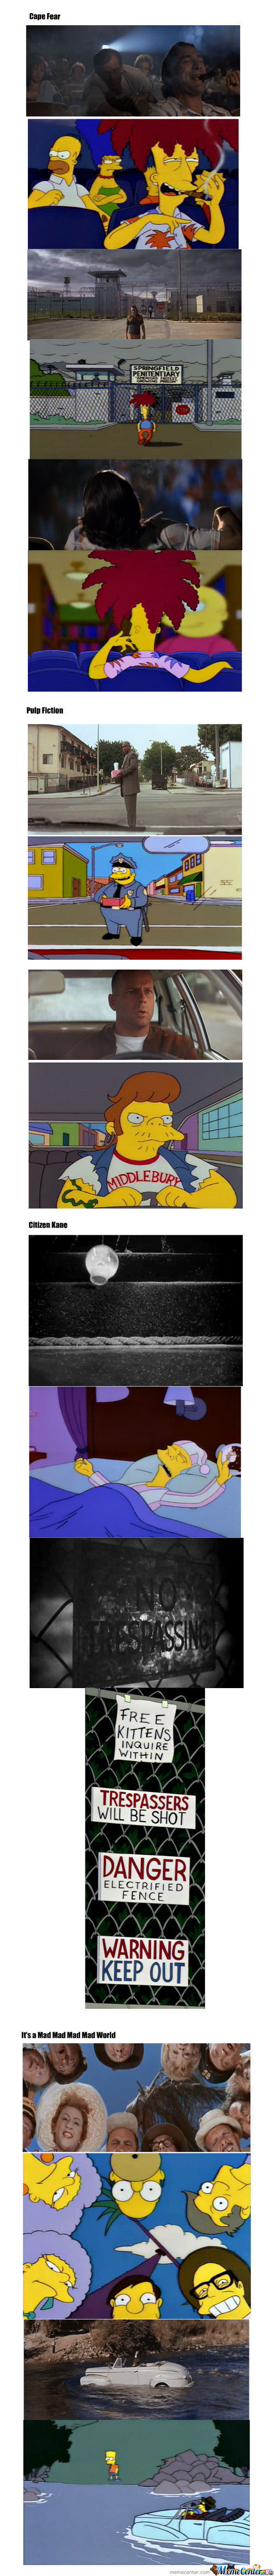 Simpsons Nailed It